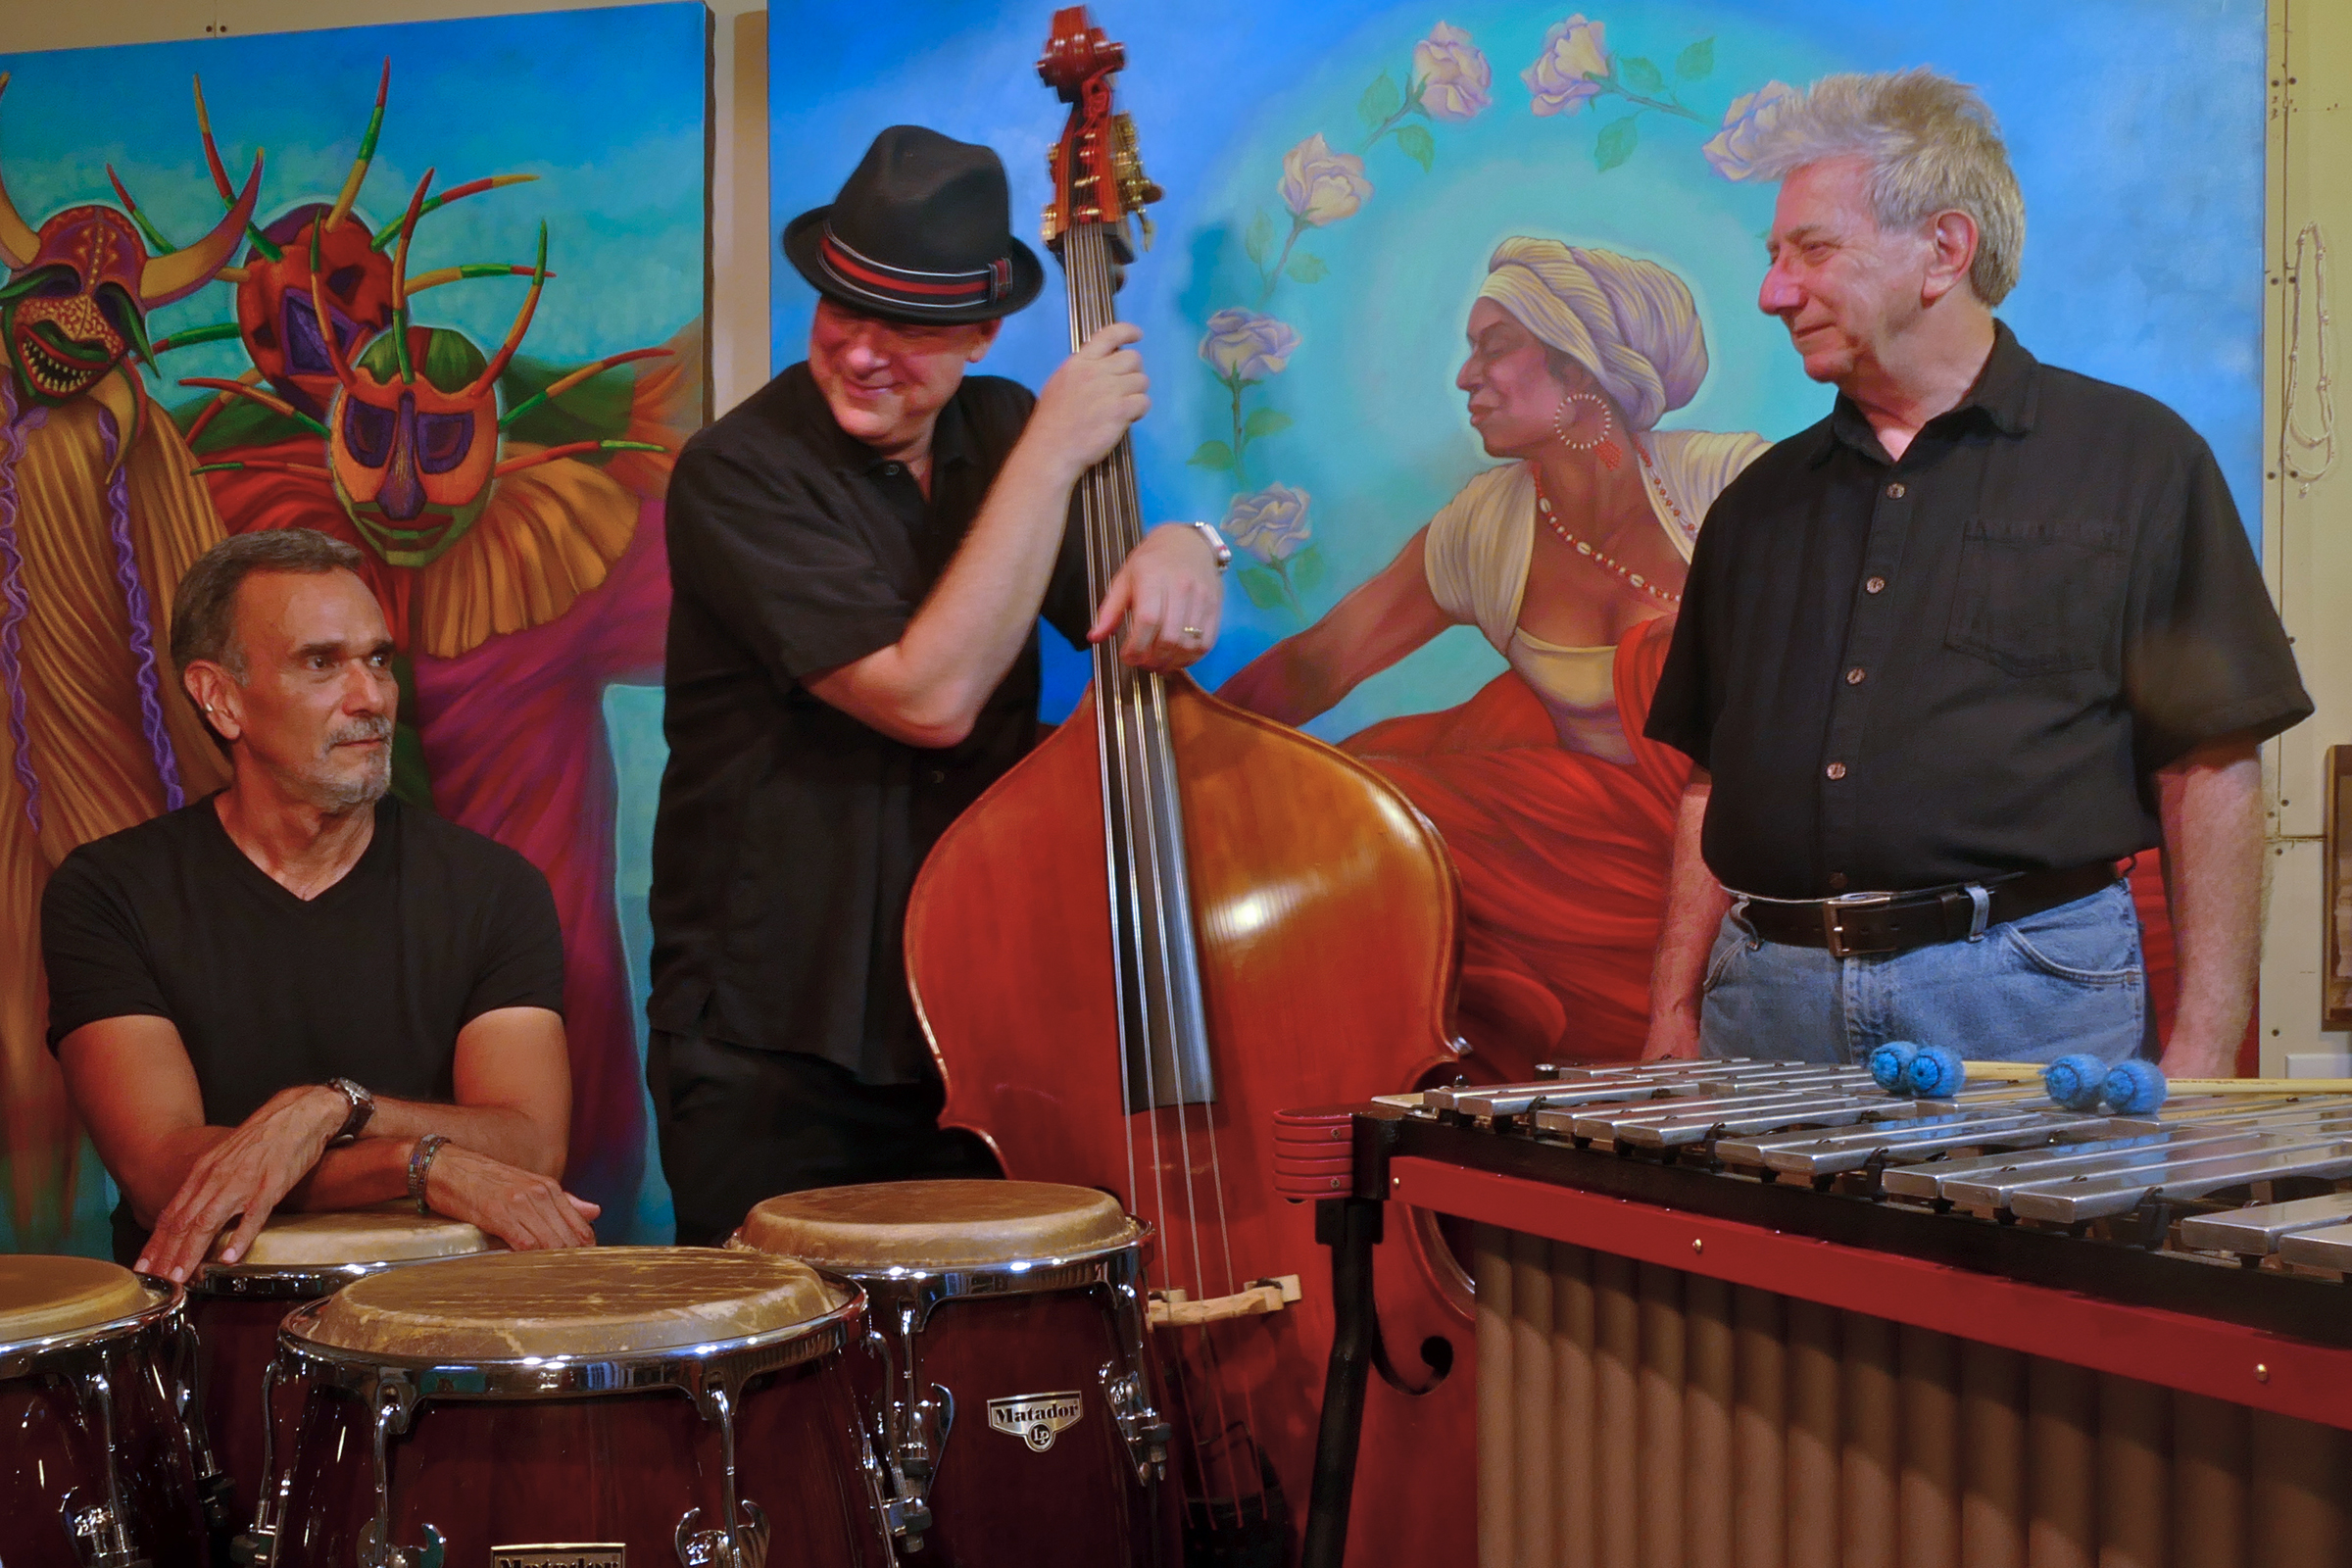 Sabor!Sabor! Latin Jazz Trio plays originals as well as Latin Jazz standards by masters such as Cal Tjader, Mongo Santamaria and Dizzy Gillespie. The line up is: Rick Altman on vibes, Michael Colletti on upright bass and Pablo Shine on Conga drums and percussion.This music, built on Afro-Caribbean grooves, is great for dancing!! Come out to celebrate Summer with us!!     I would like to give credit to the photographer,Amy Fenton-Shine (my wife).